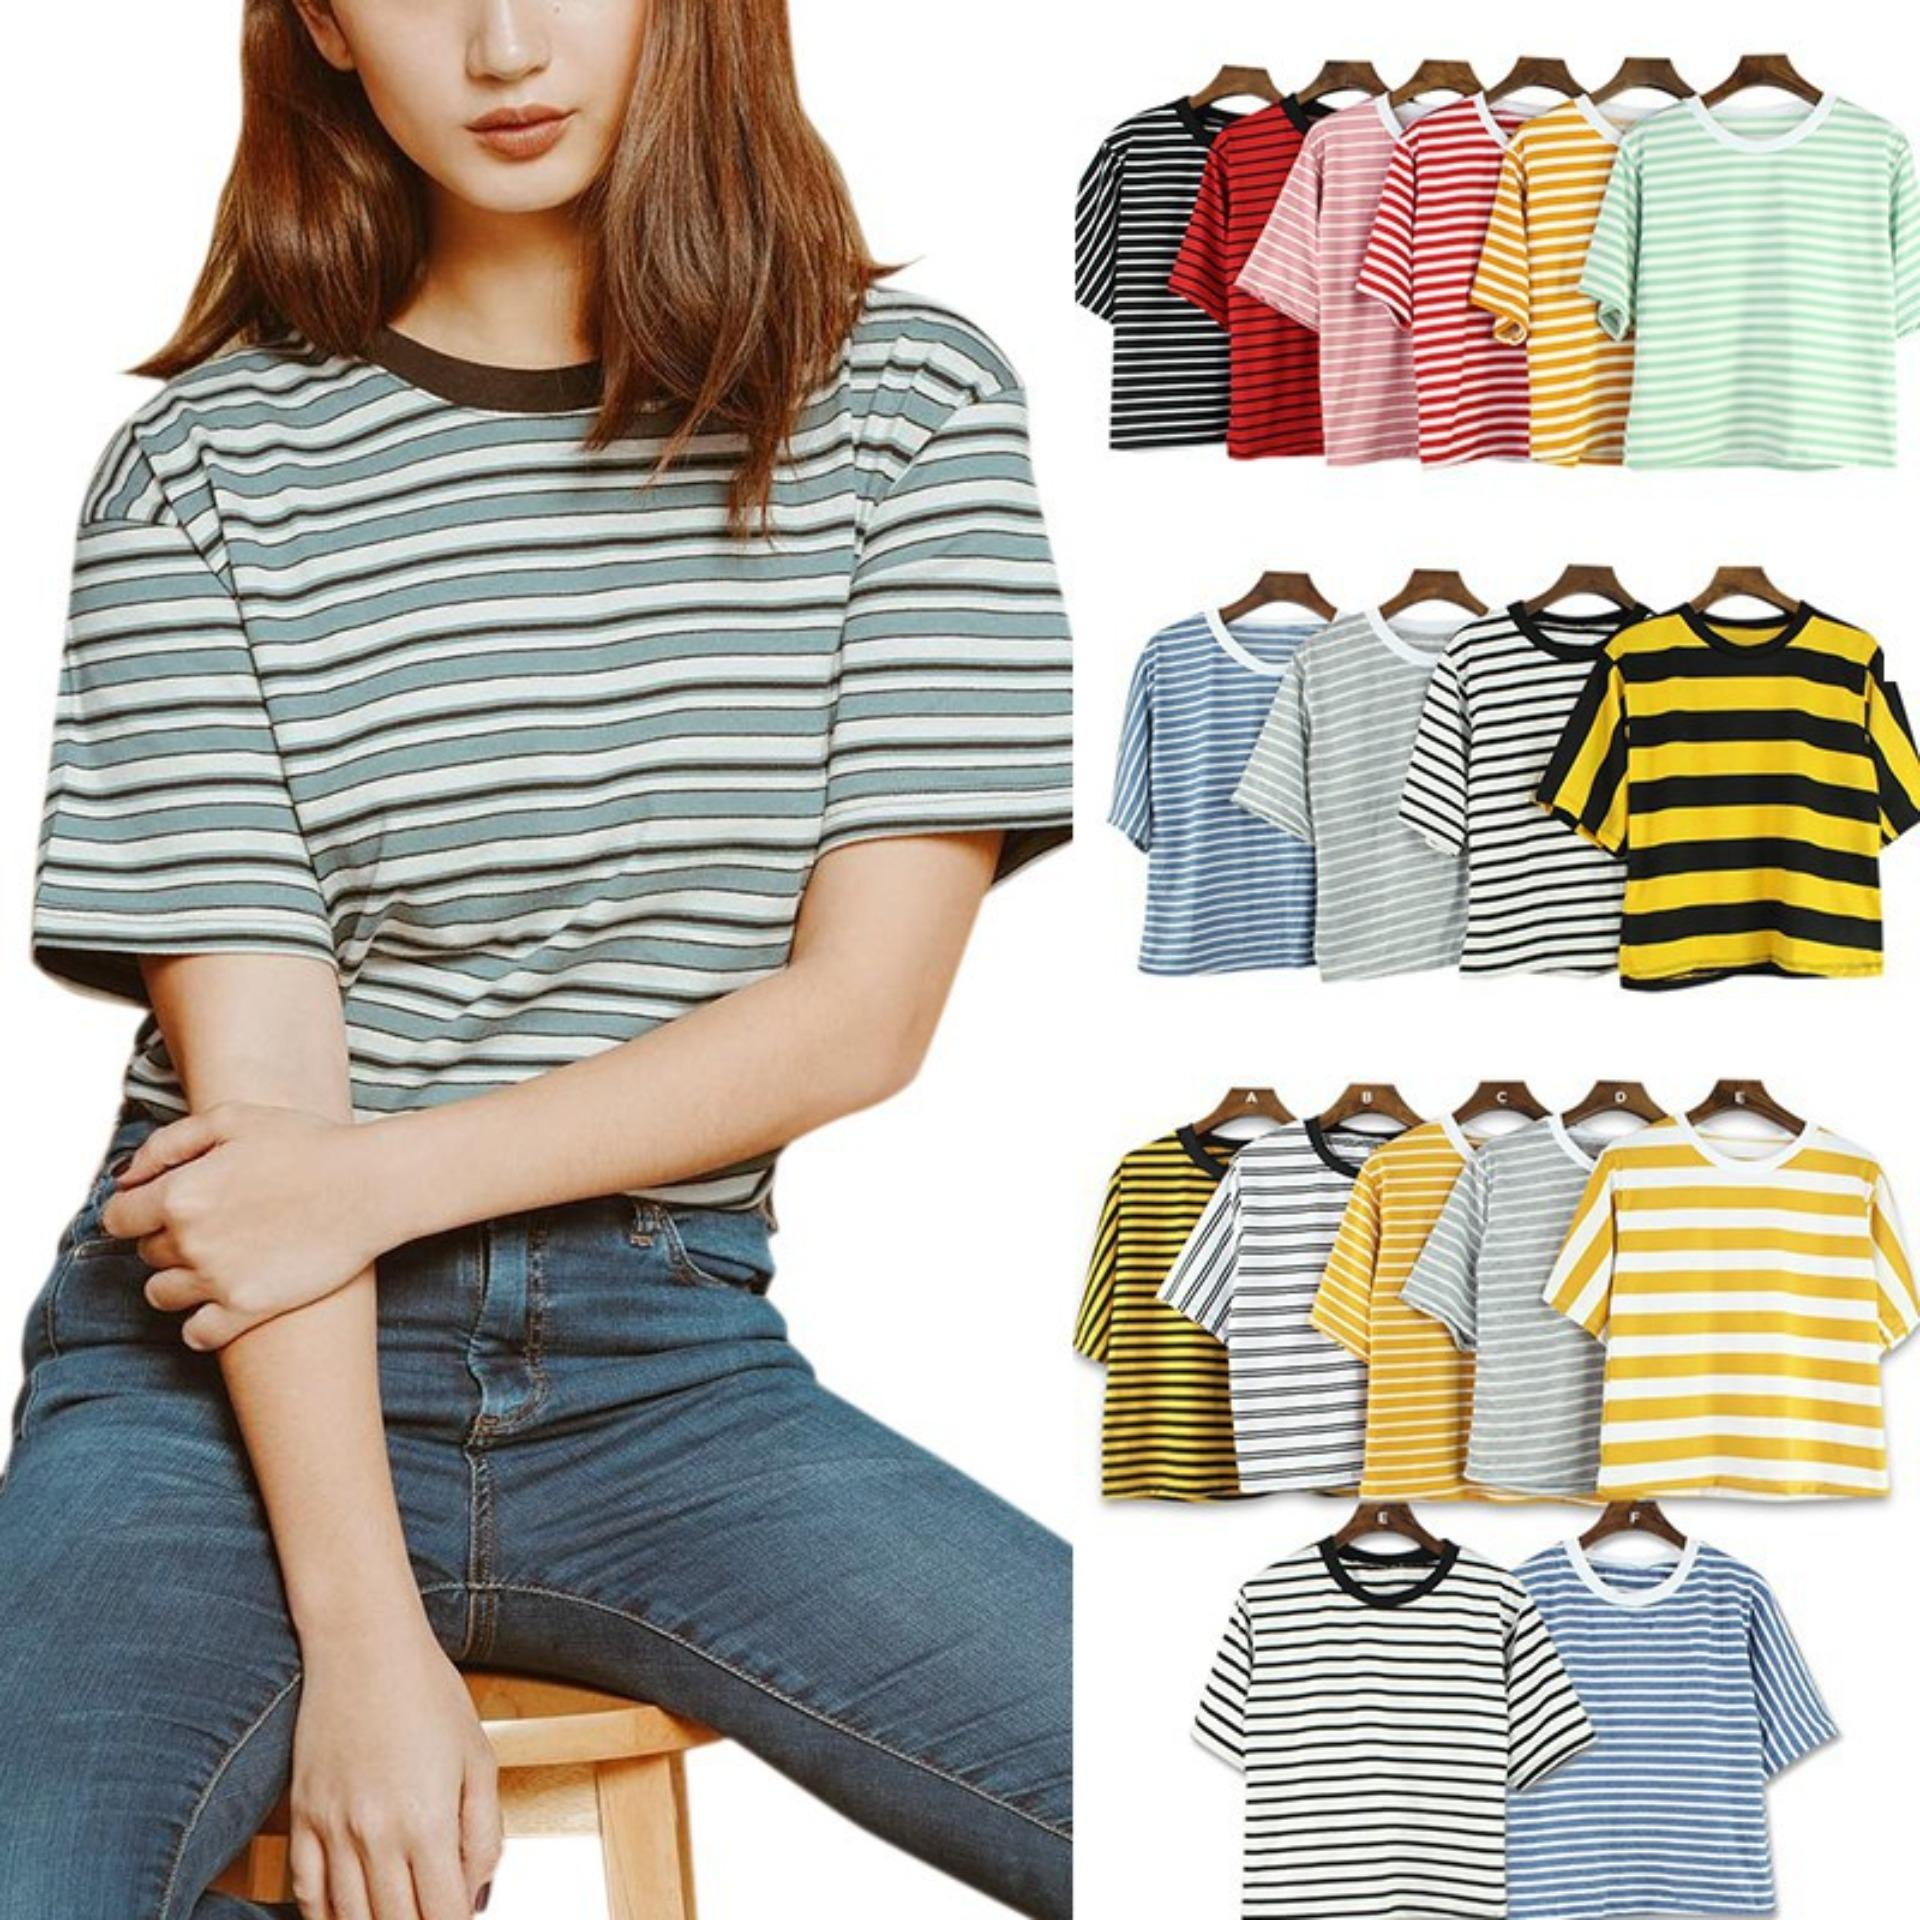 b00a922ae733 Blouses for Women for sale - Fashion Blouse online brands